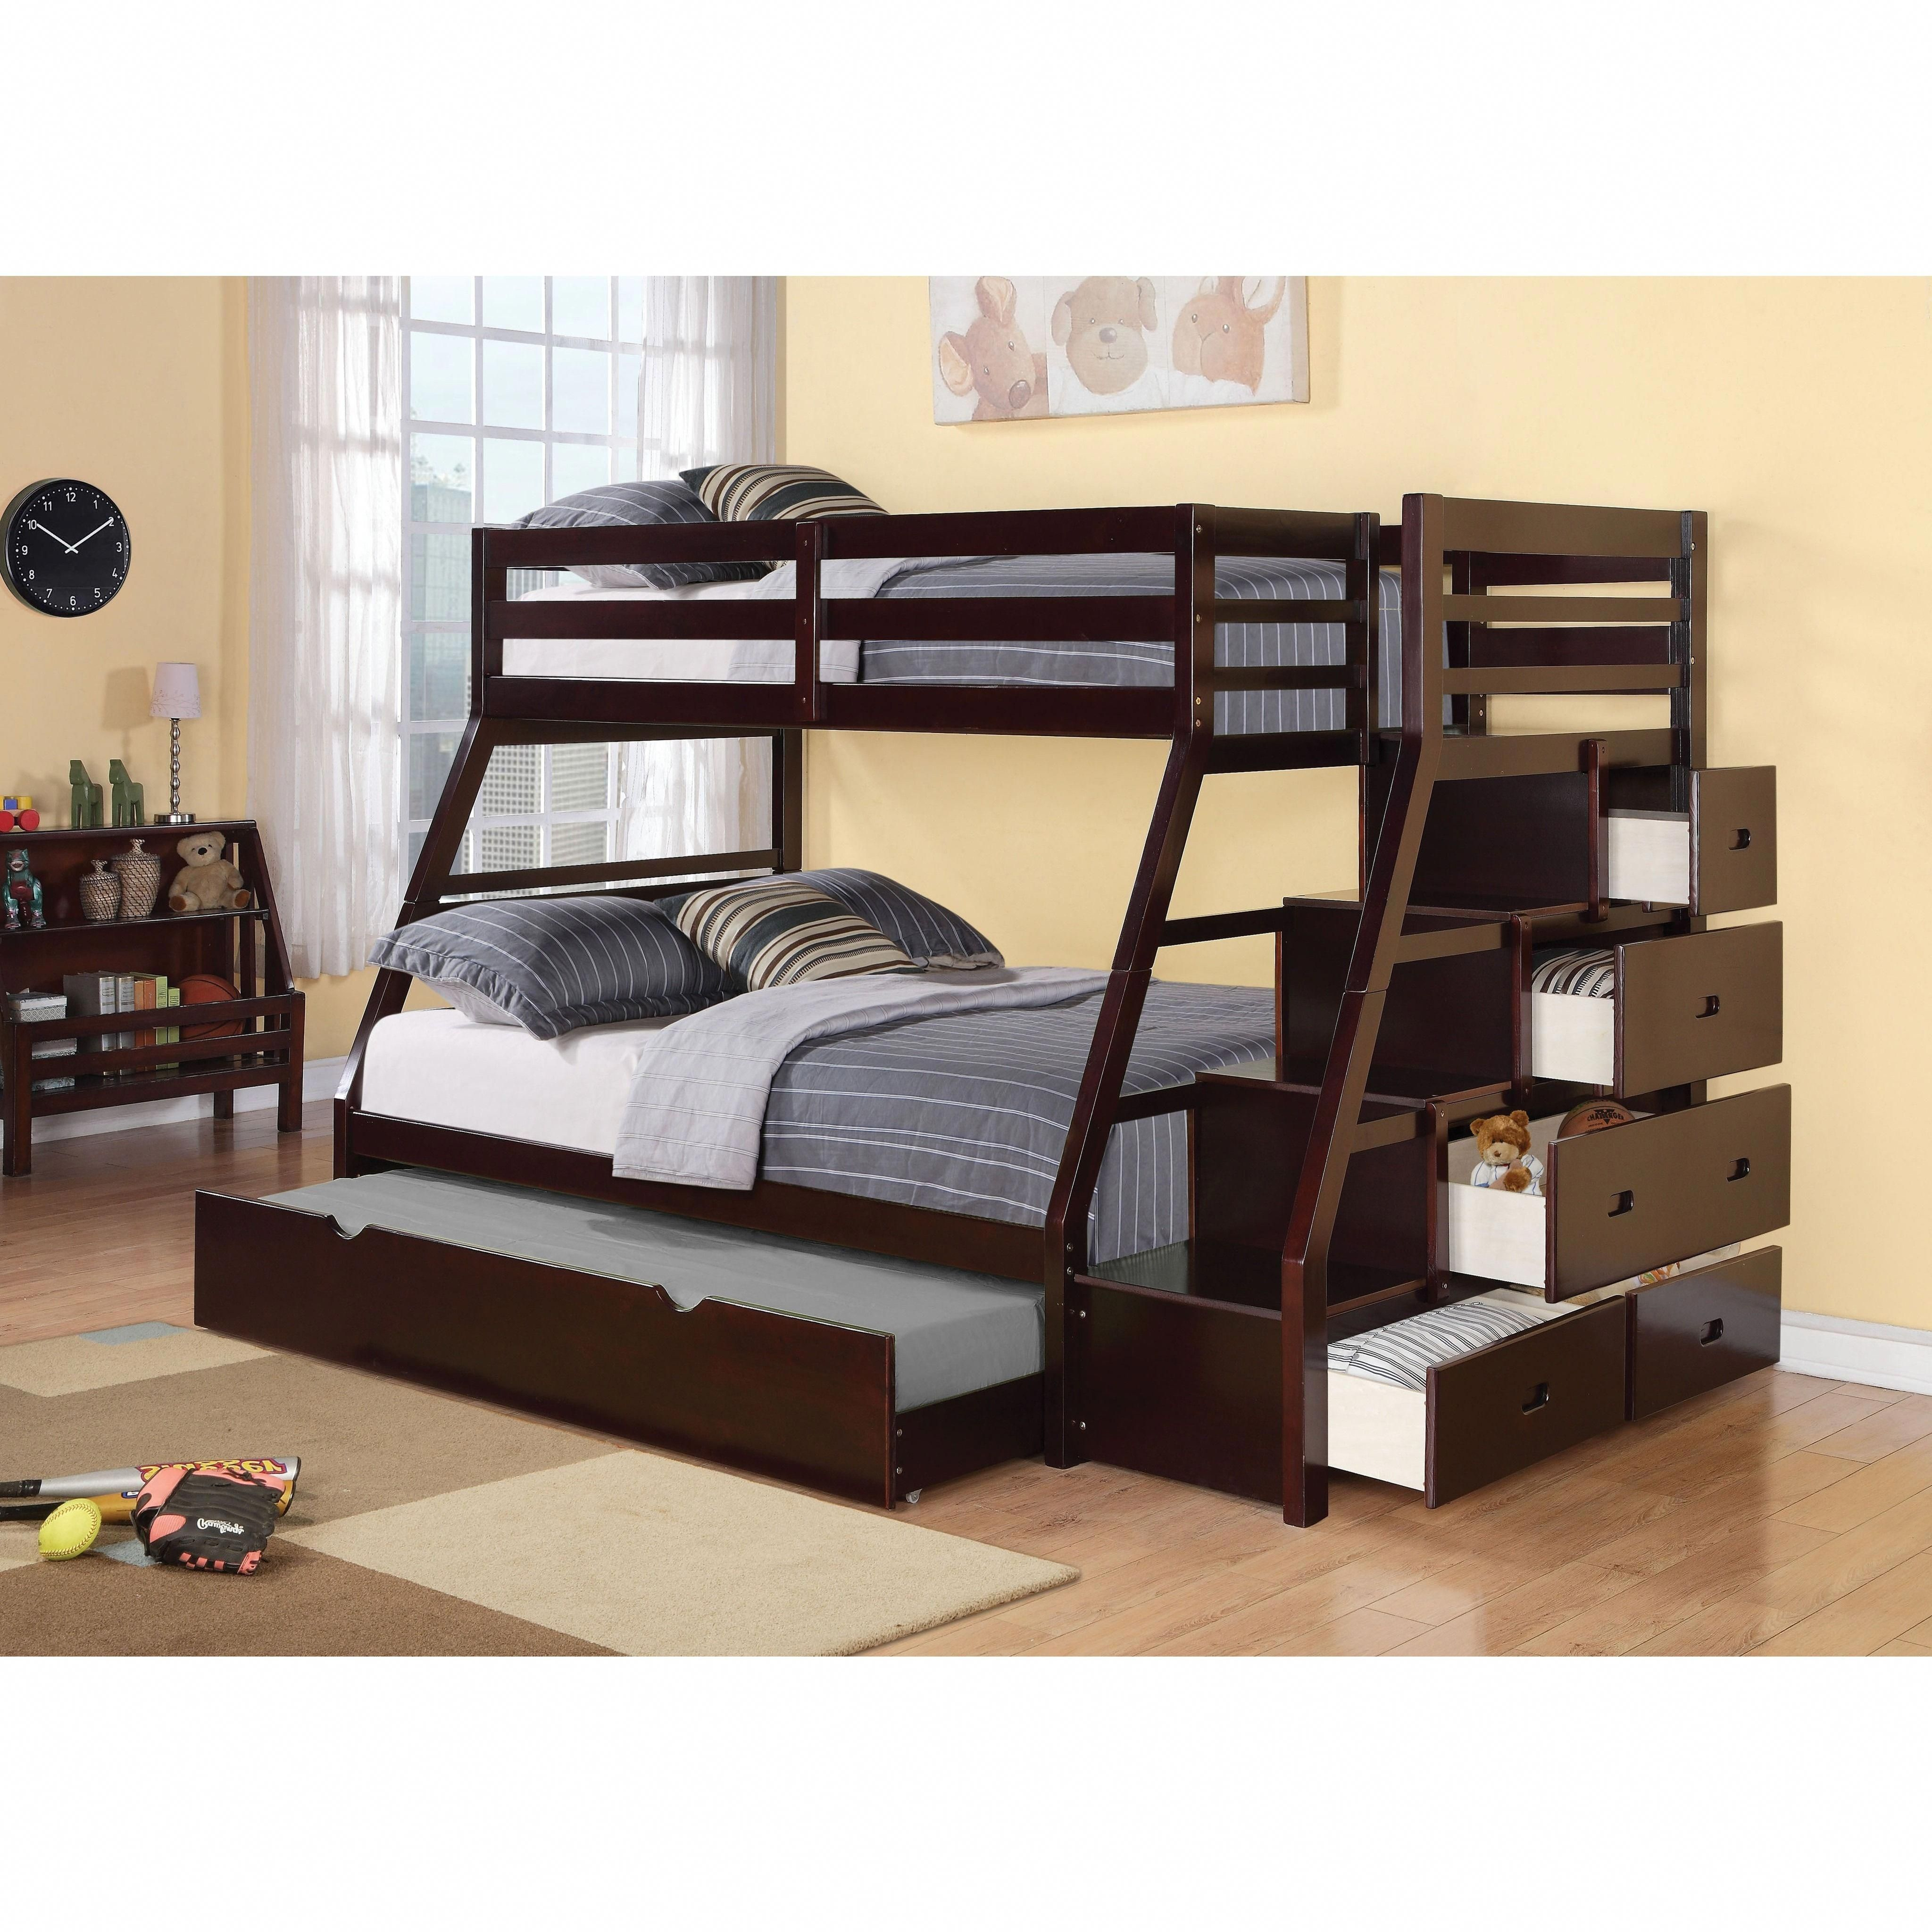 Loft bed with desk and trundle  Jason Espresso Twin over Full Bunk Bed with Storage u Trundle